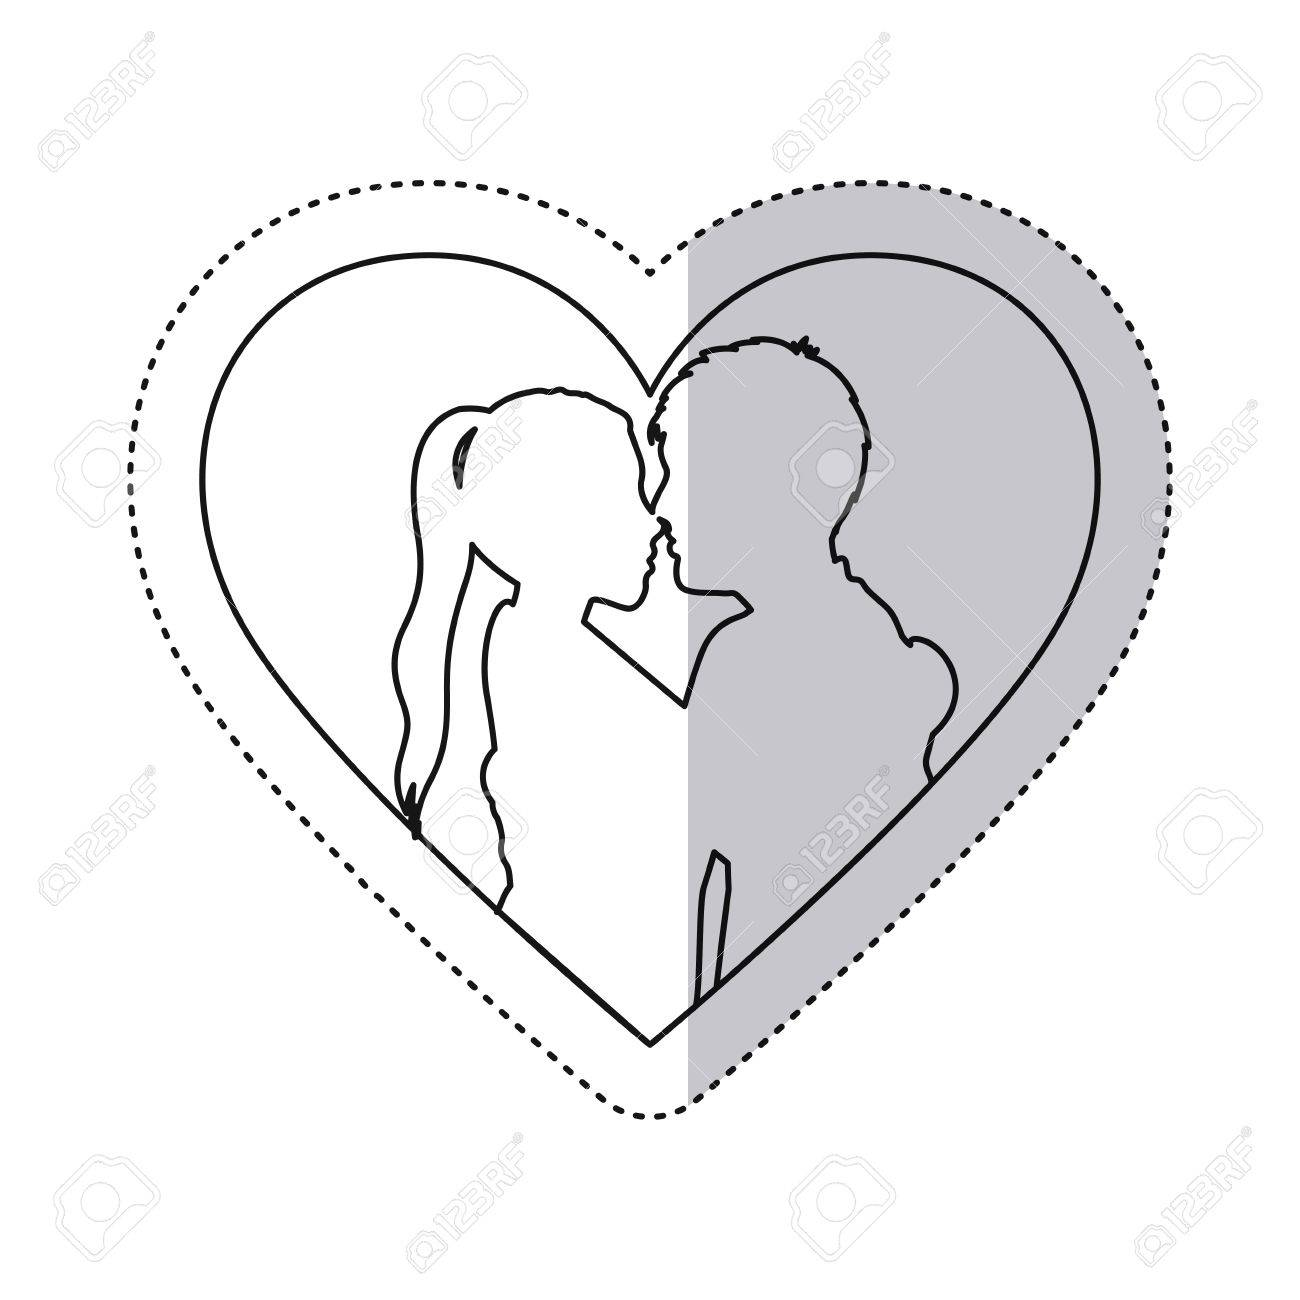 Sticker Monochrome Contour With Heart Frame And Half Body Couple ... for Couple Sticker Line  575lpg